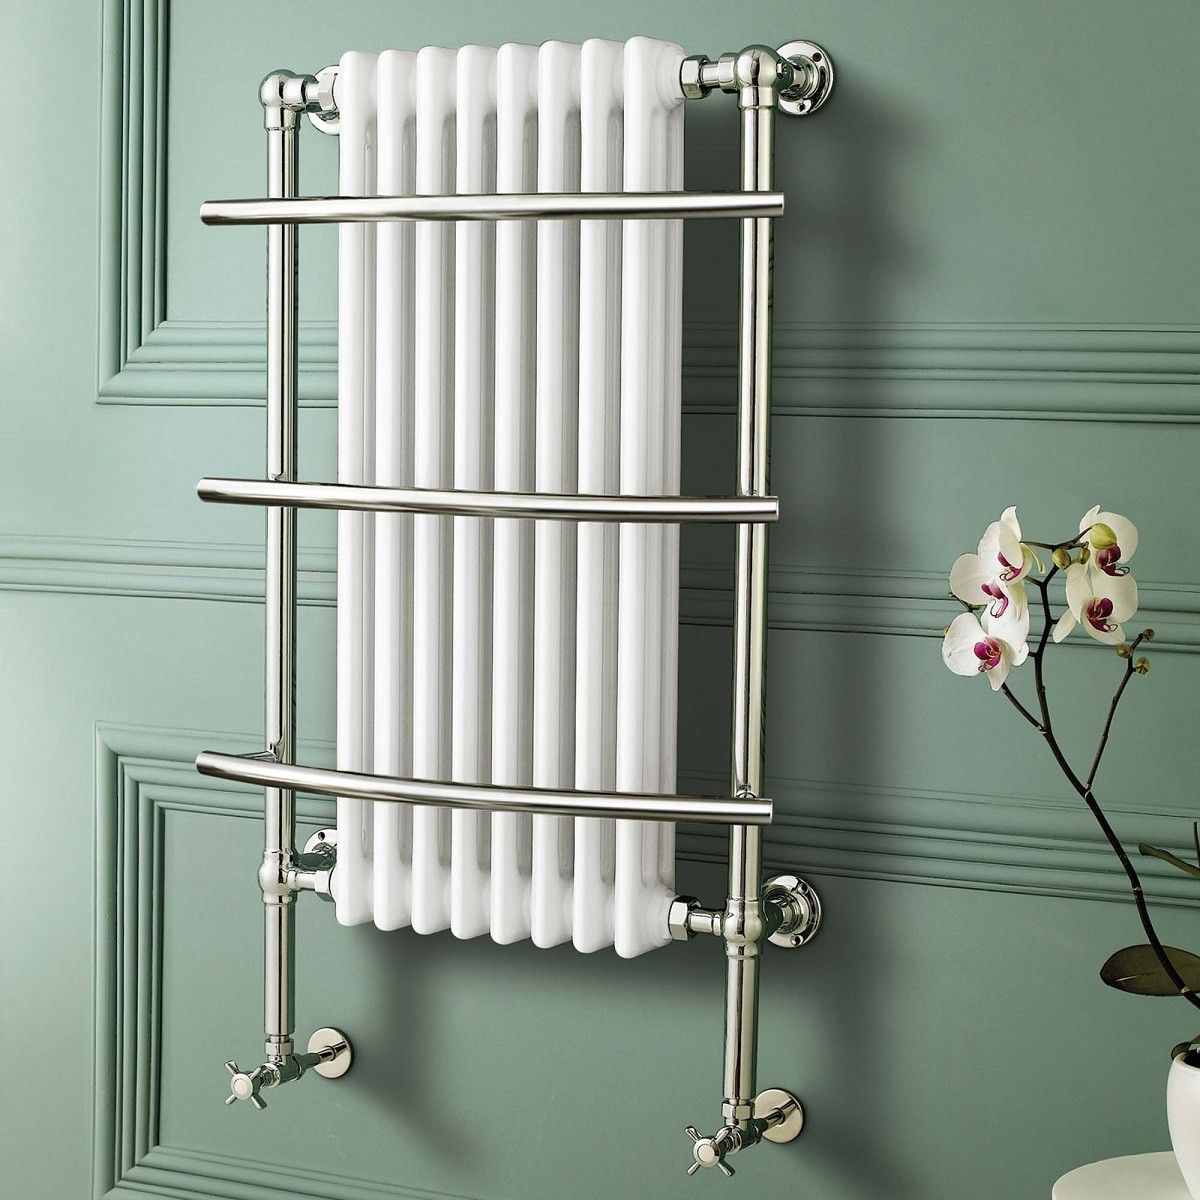 Small heated towel rails for bathrooms - Just Inc Vat Traditional White Wall Mounted Towel Rail Radiator Victoria Huge Stocks At The Cheapest Prices Order Your Here On Special Offer